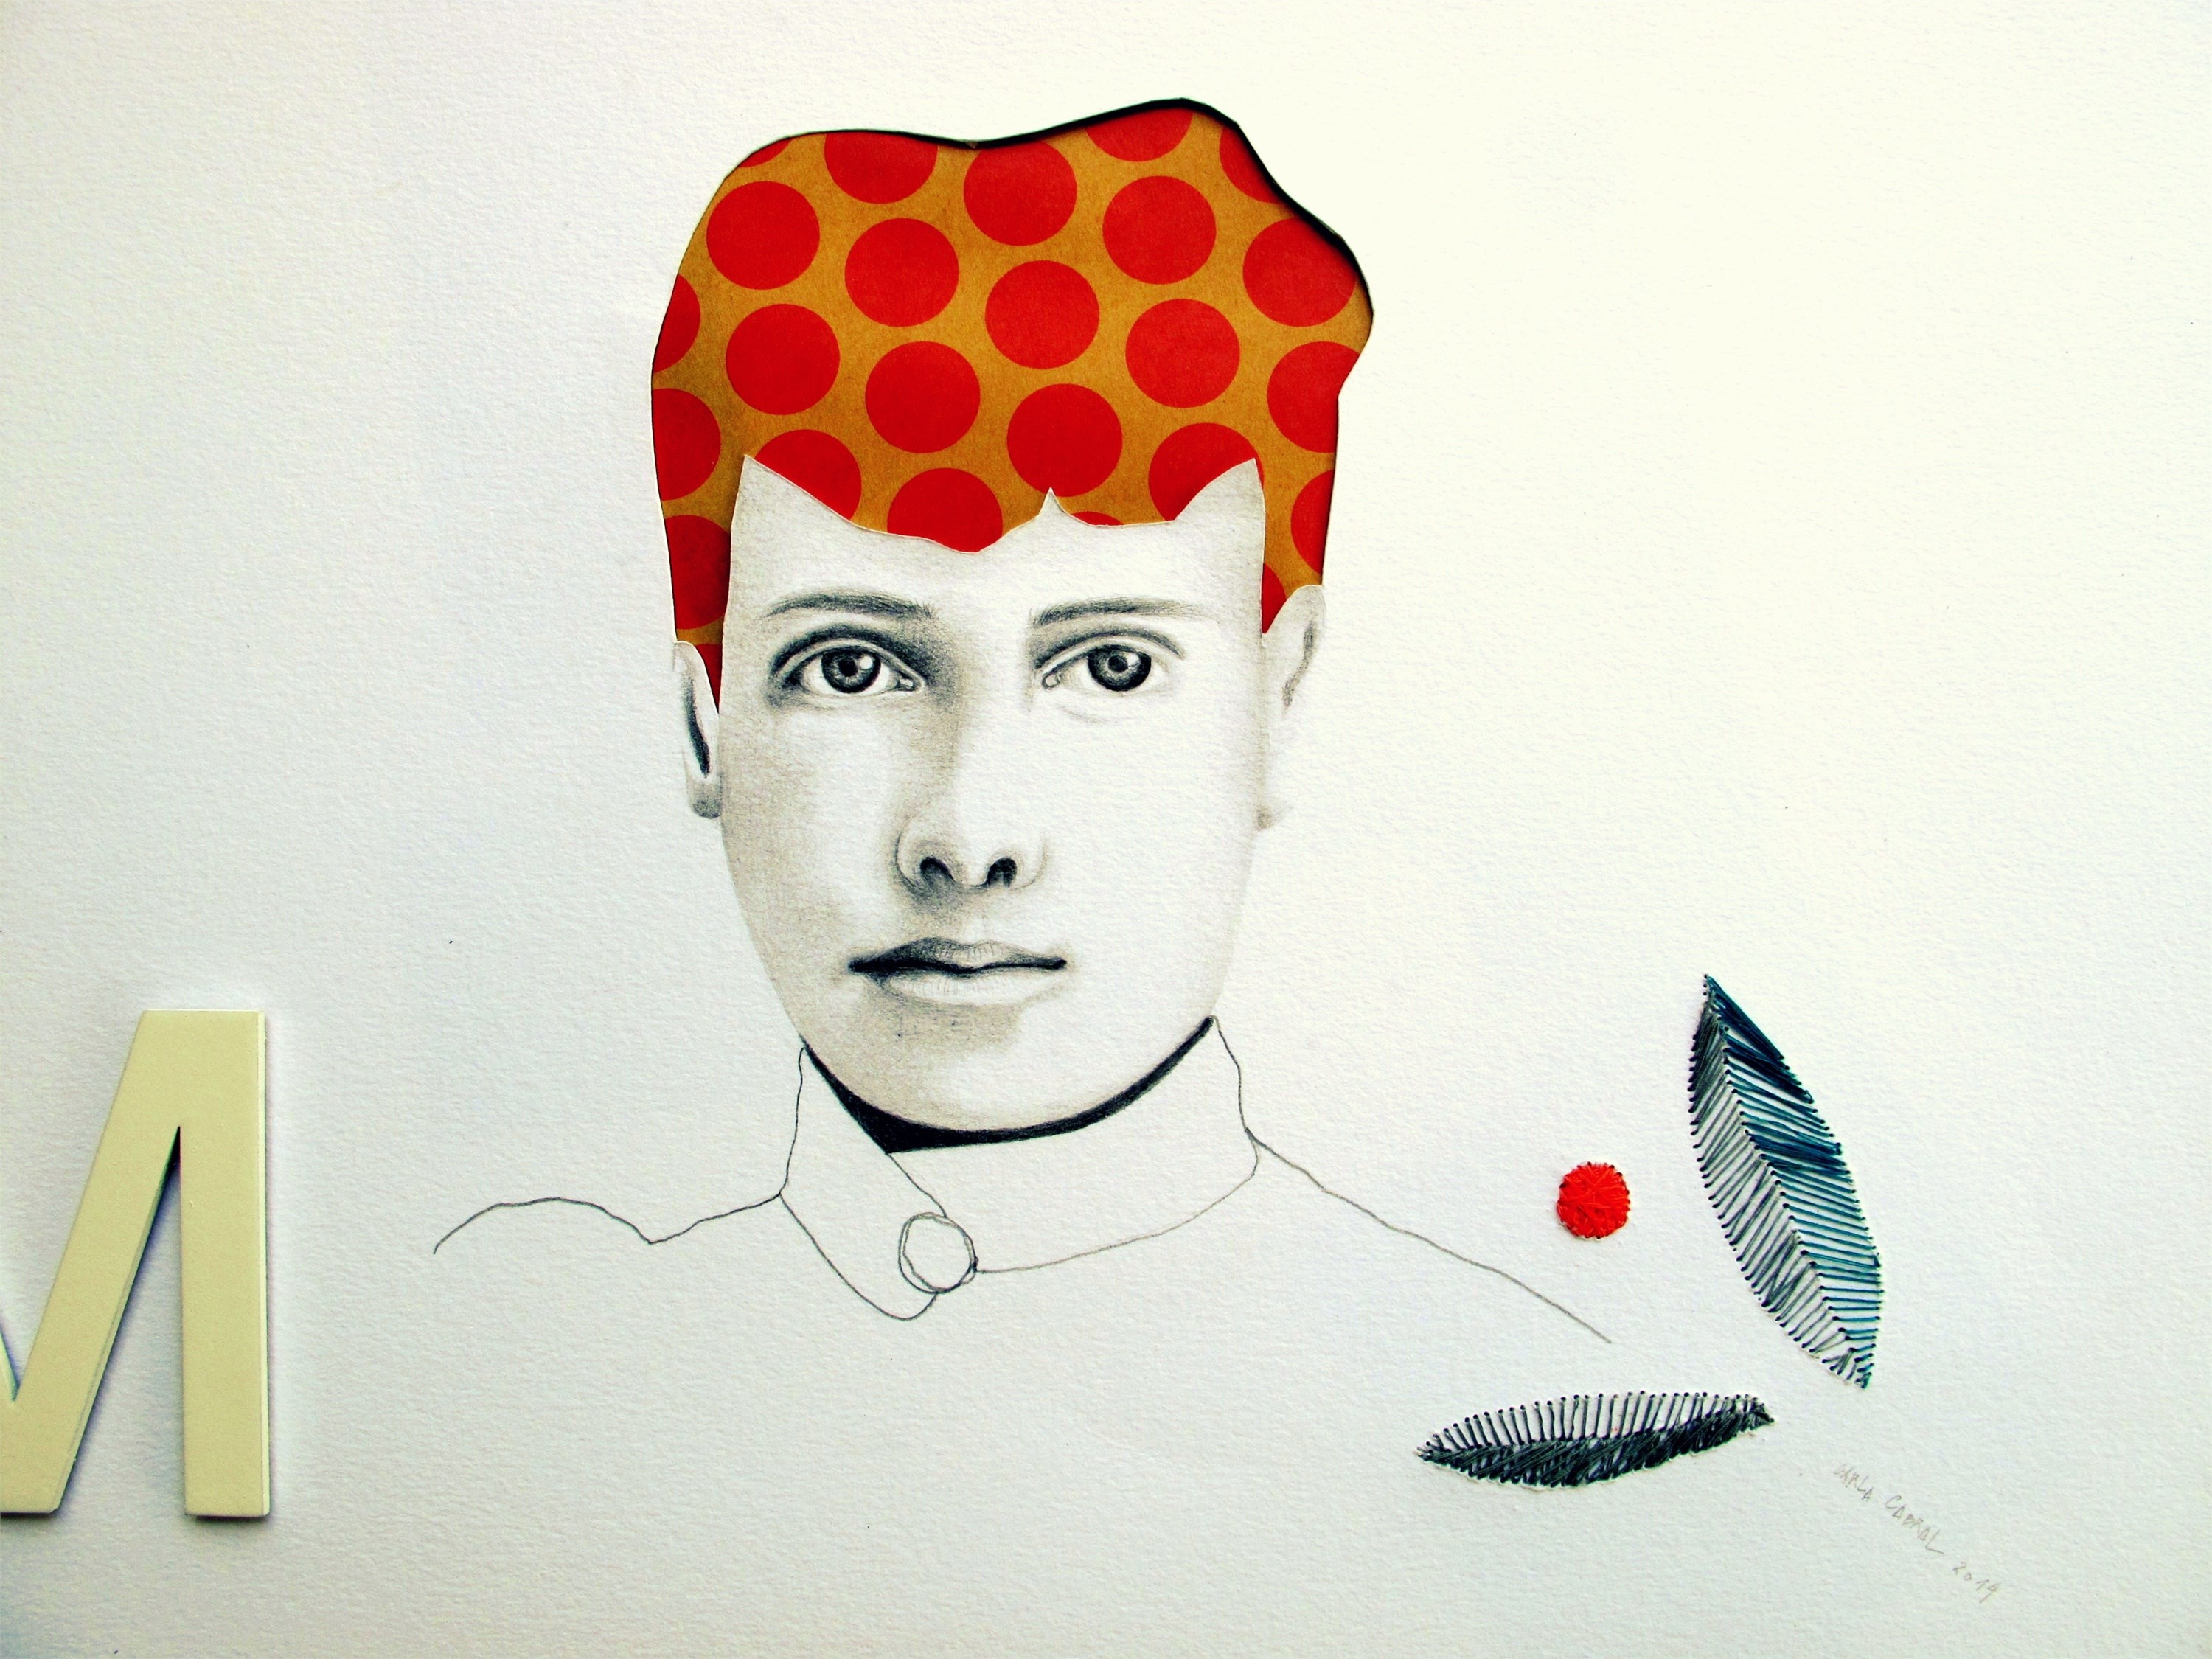 FRAU ELISABETH II, original Human Figure Collage Drawing and Illustration by Carla Cabral